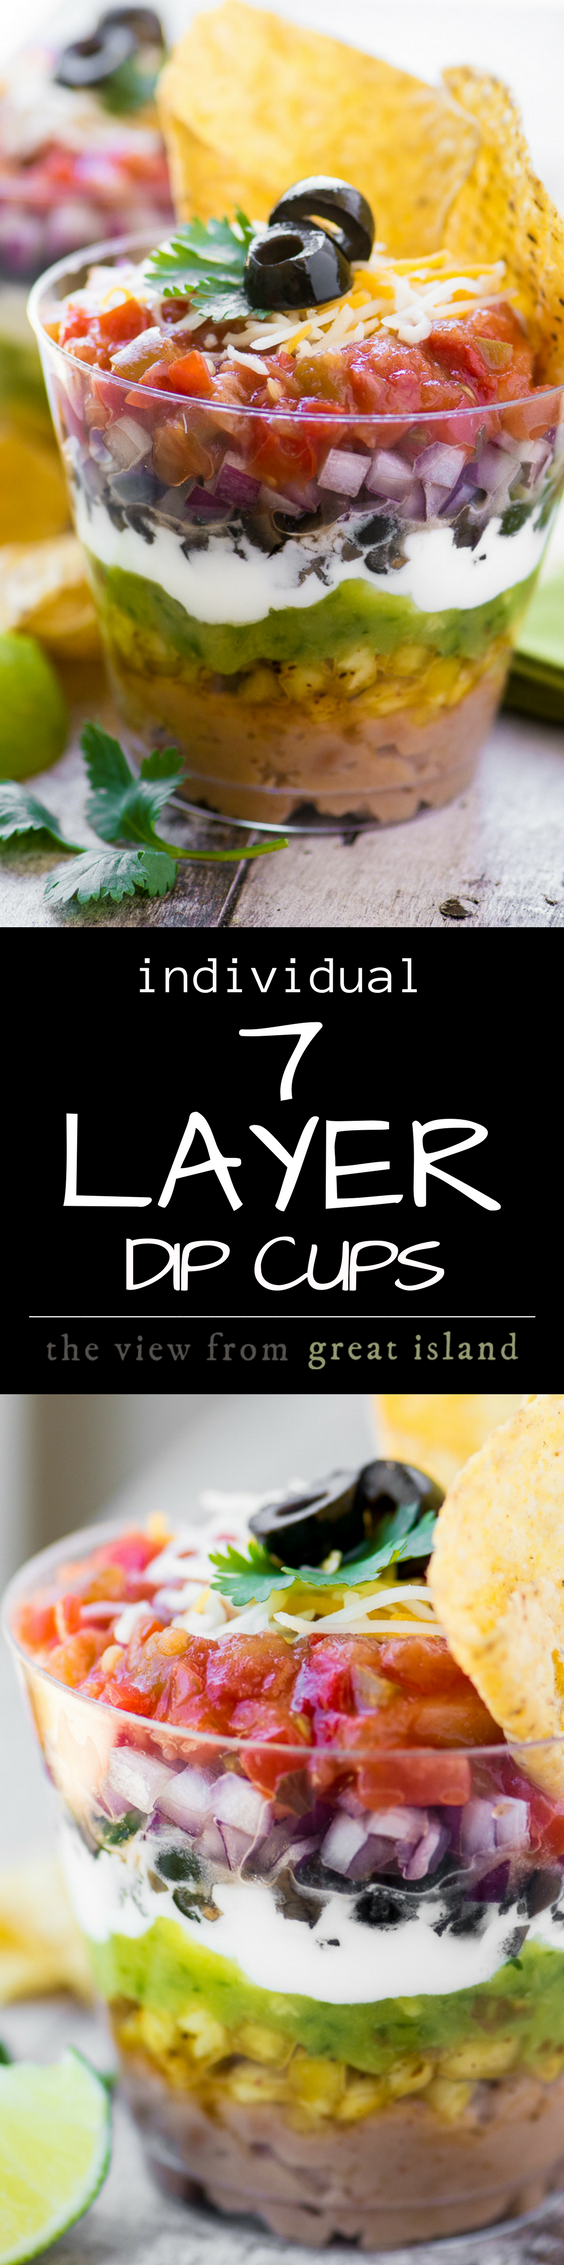 These colorful 7 Layer Dip Cups are portable little appetizer stations layered up just like everybody's favorite Tex-Mex bean dip ~ so you can mingle and chow down at the same time ~ genius! #appetizer #dip #7layer #mexican #guacamole #salsa #summer #barbecue #memorialday #cincodemayo #4thofjuly